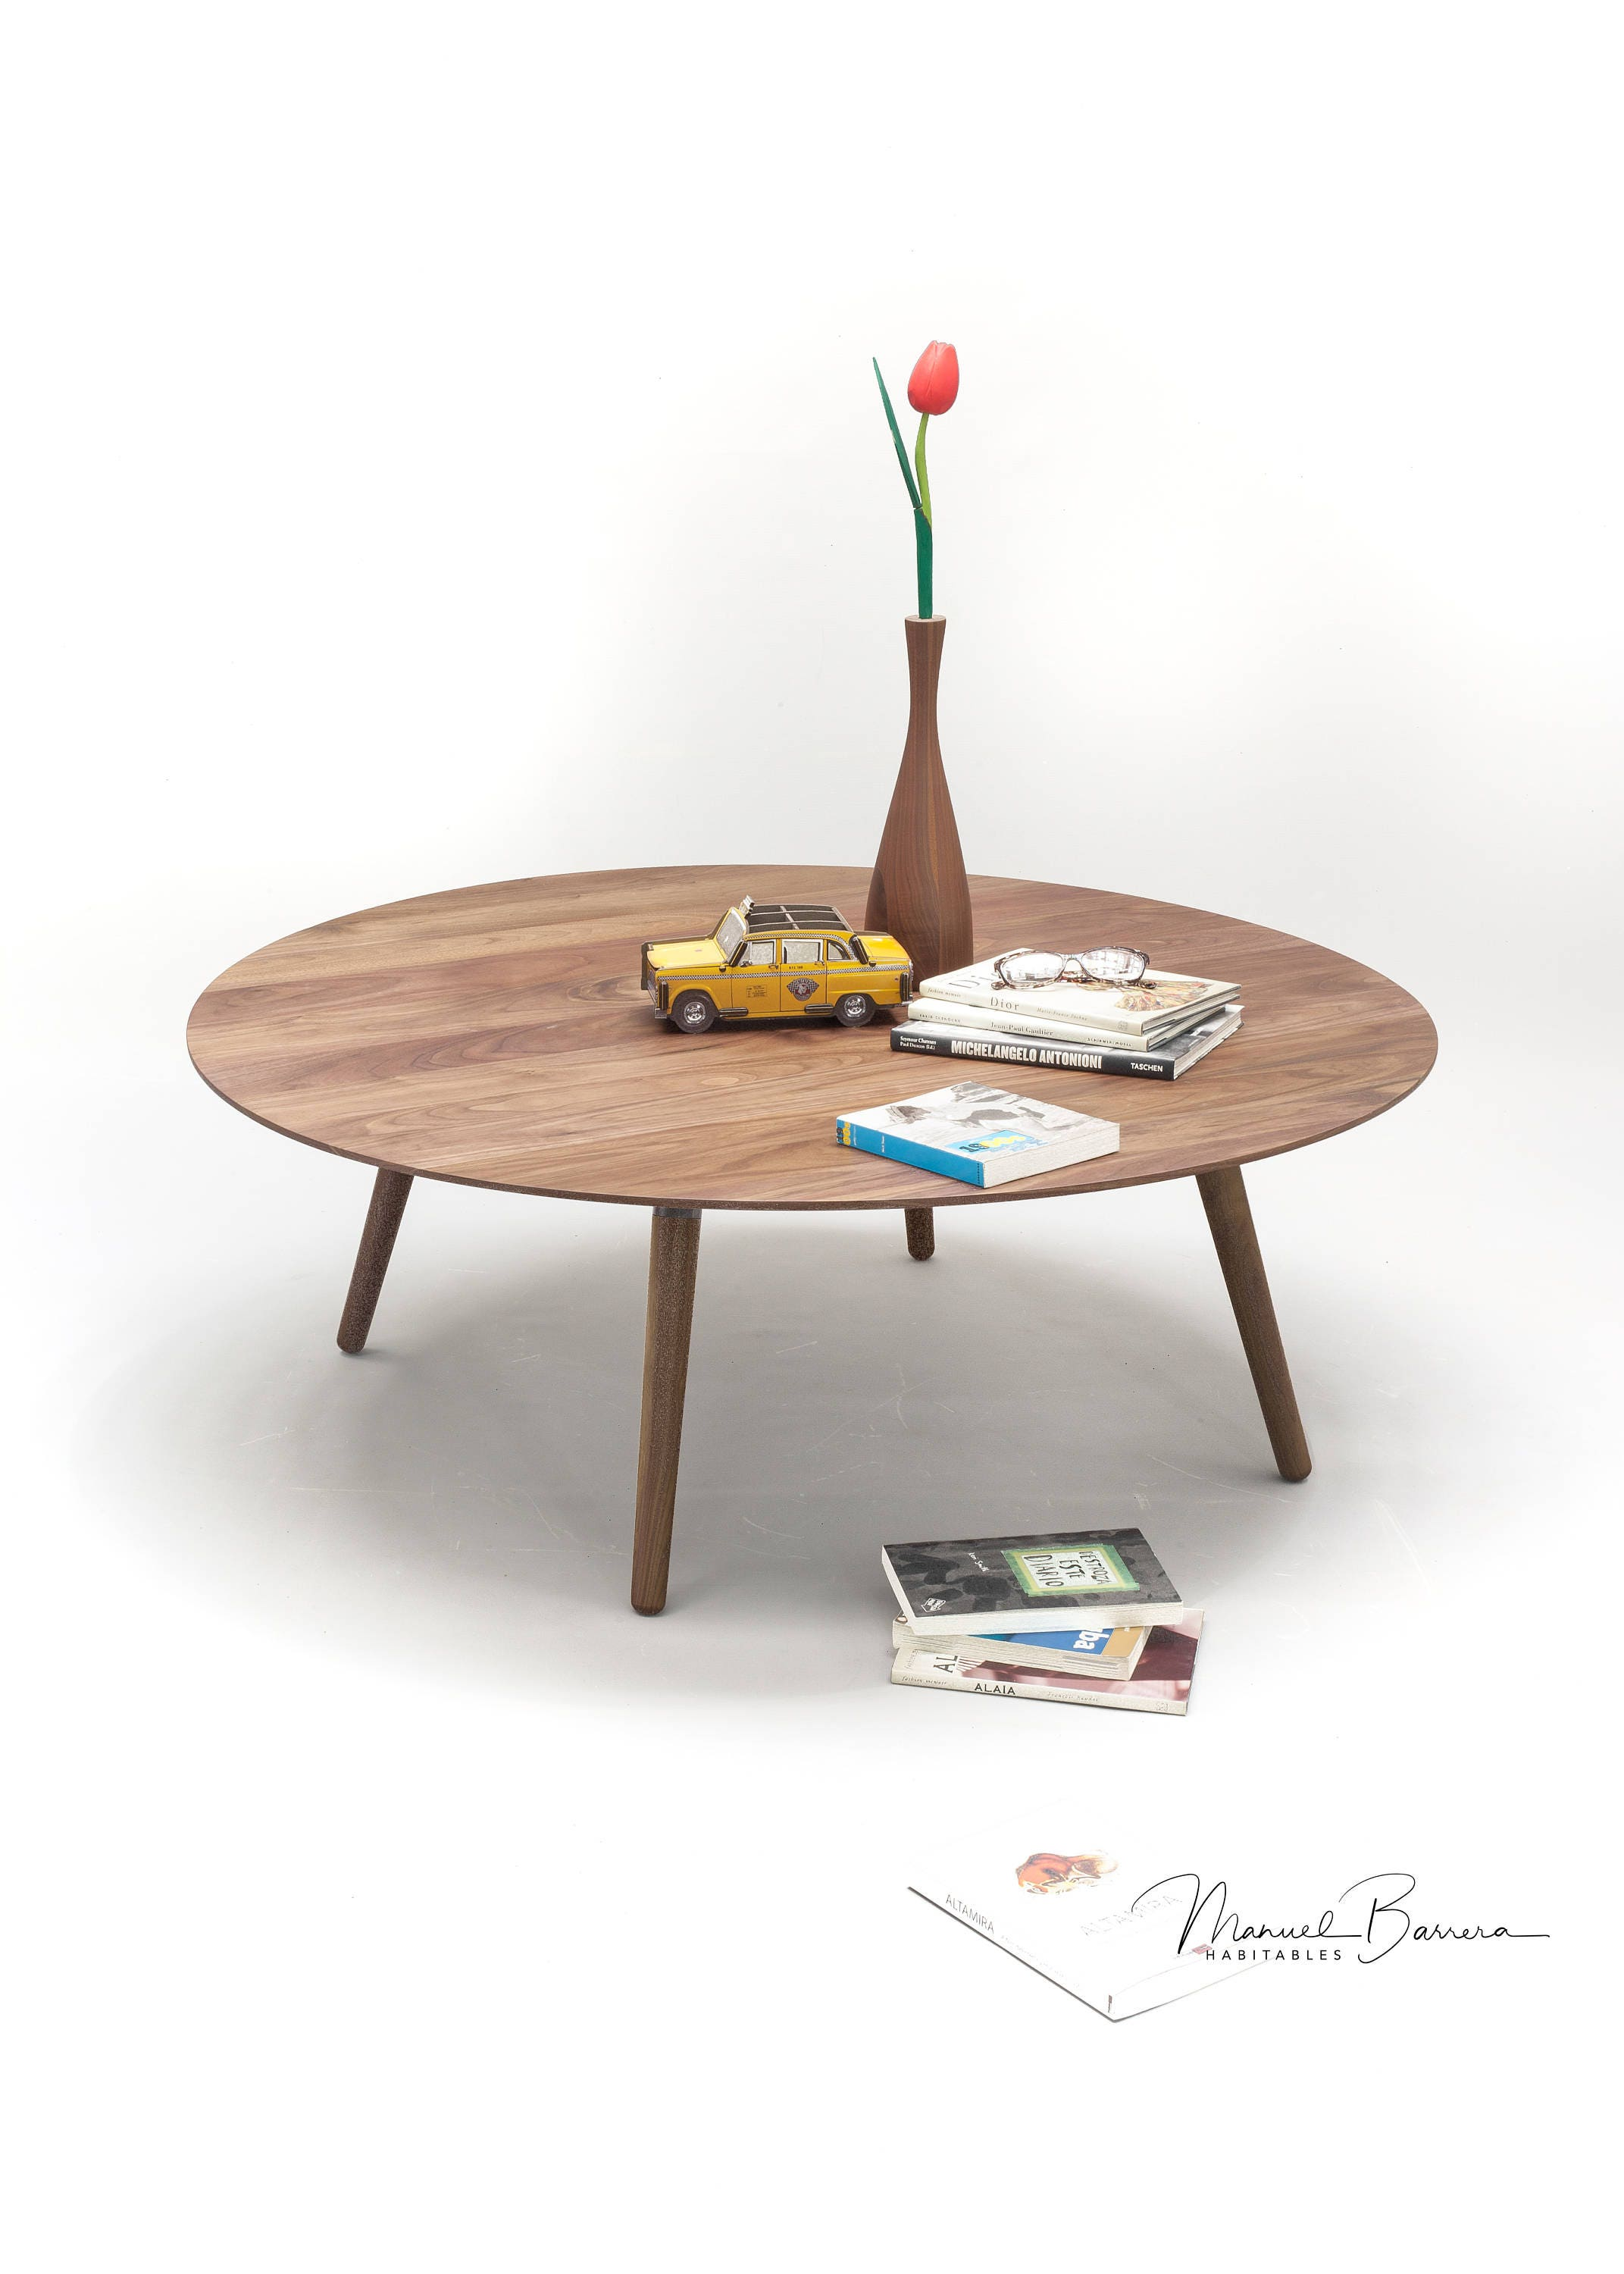 Coffee table round table side table made of solid Walnut board